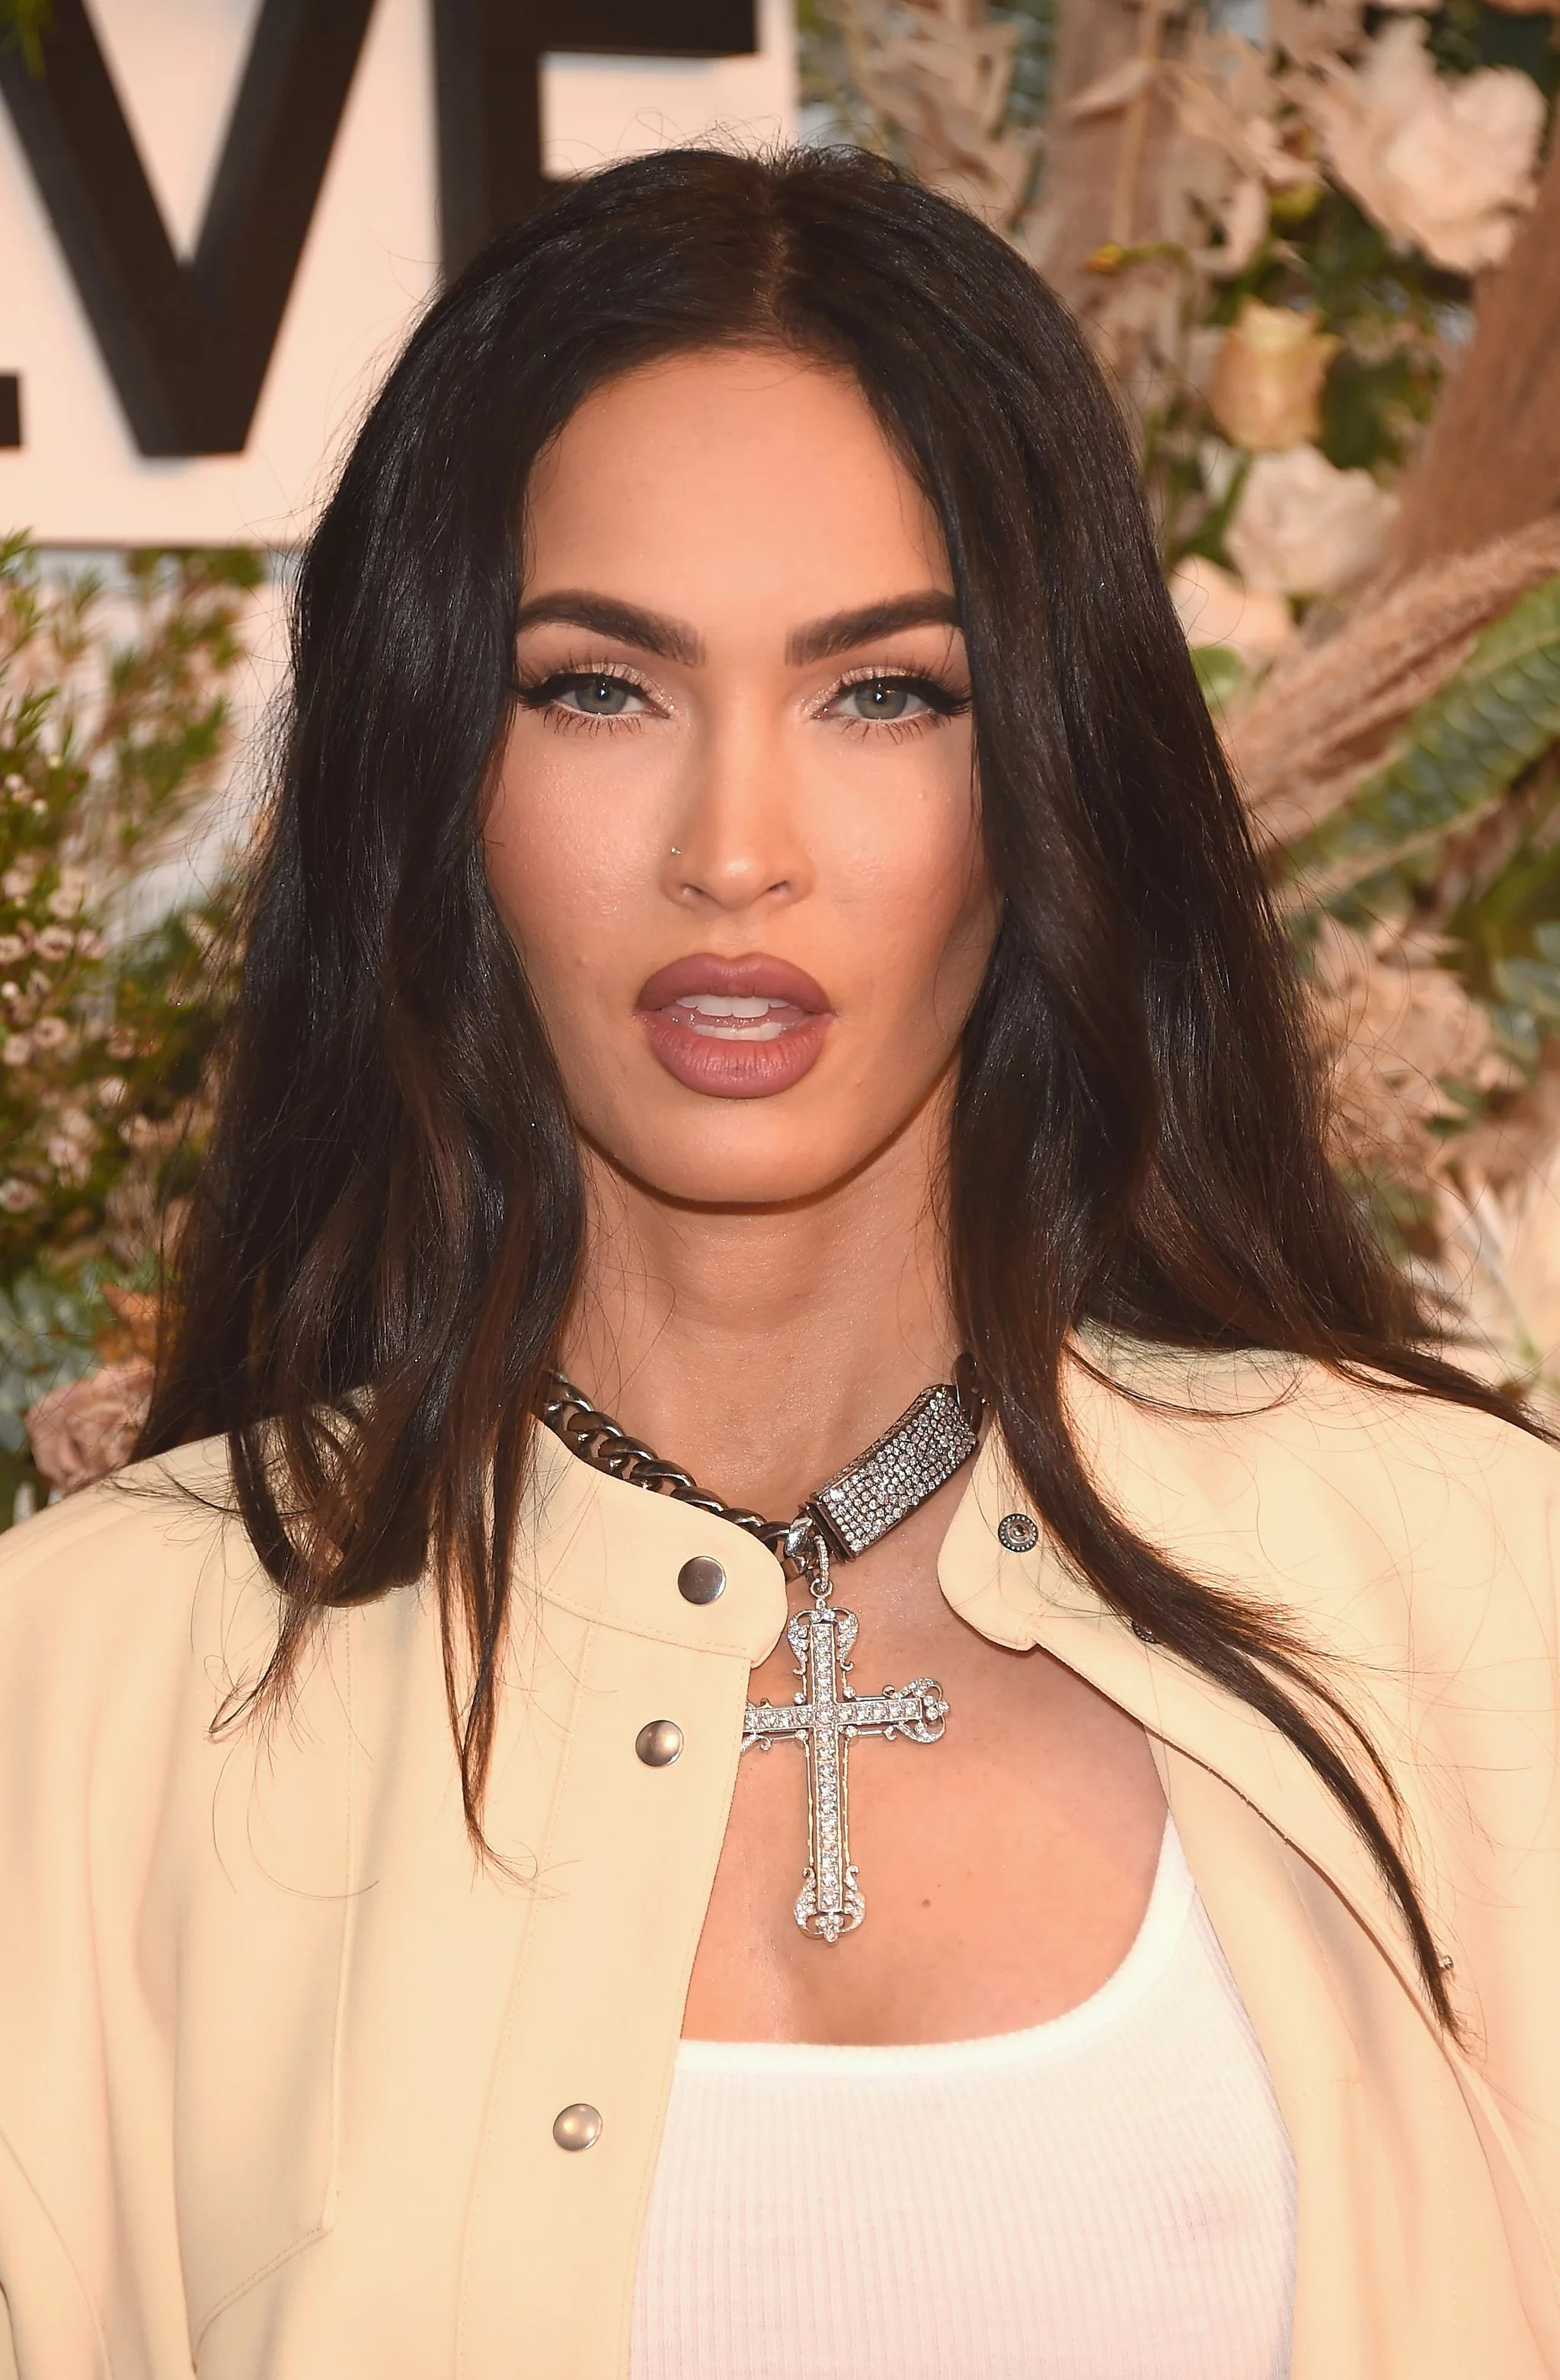 NEW YORK, NEW YORK - SEPTEMBER 09: Megan Fox attends the REVOLVE GALLERY premiere at Hudson Yards on September 09, 2021 in New York City.  (Photo by Gary Gershoff / Getty Images)